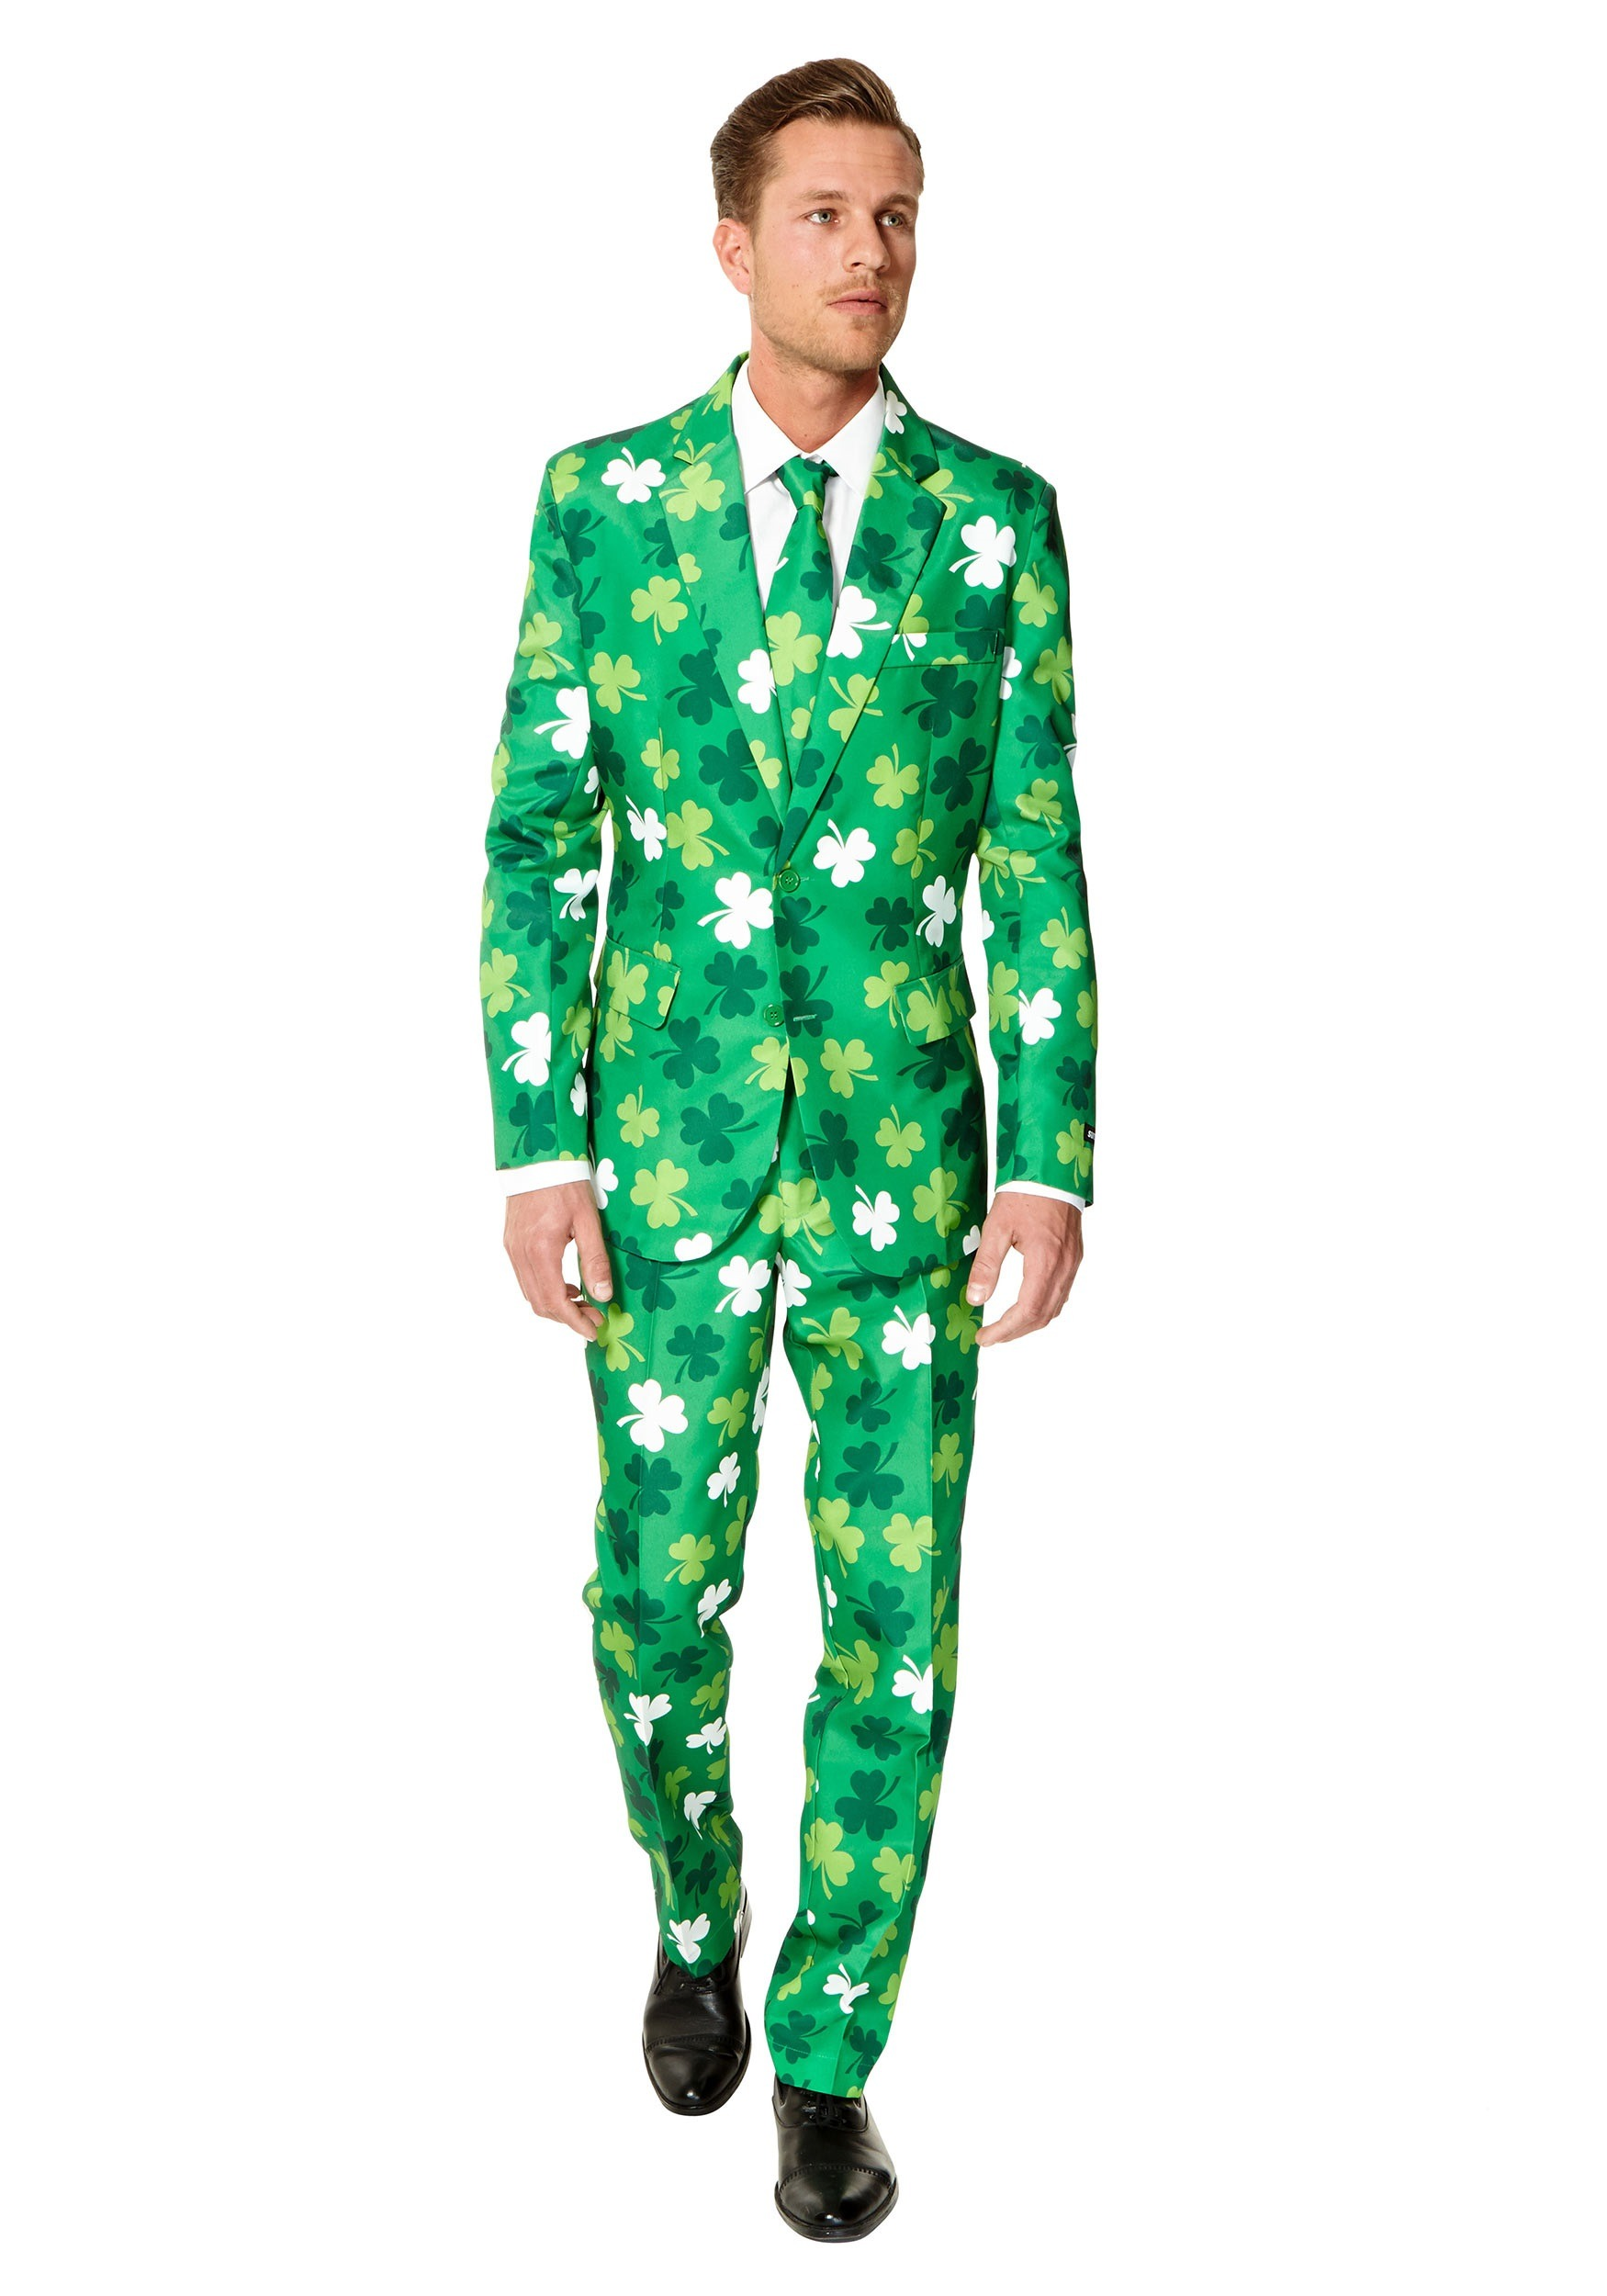 saint patrick single men Find the perfect gift for the man in your life whether family or friend when you choose from the large selection of inspirational gifts found at st patrick's guild.